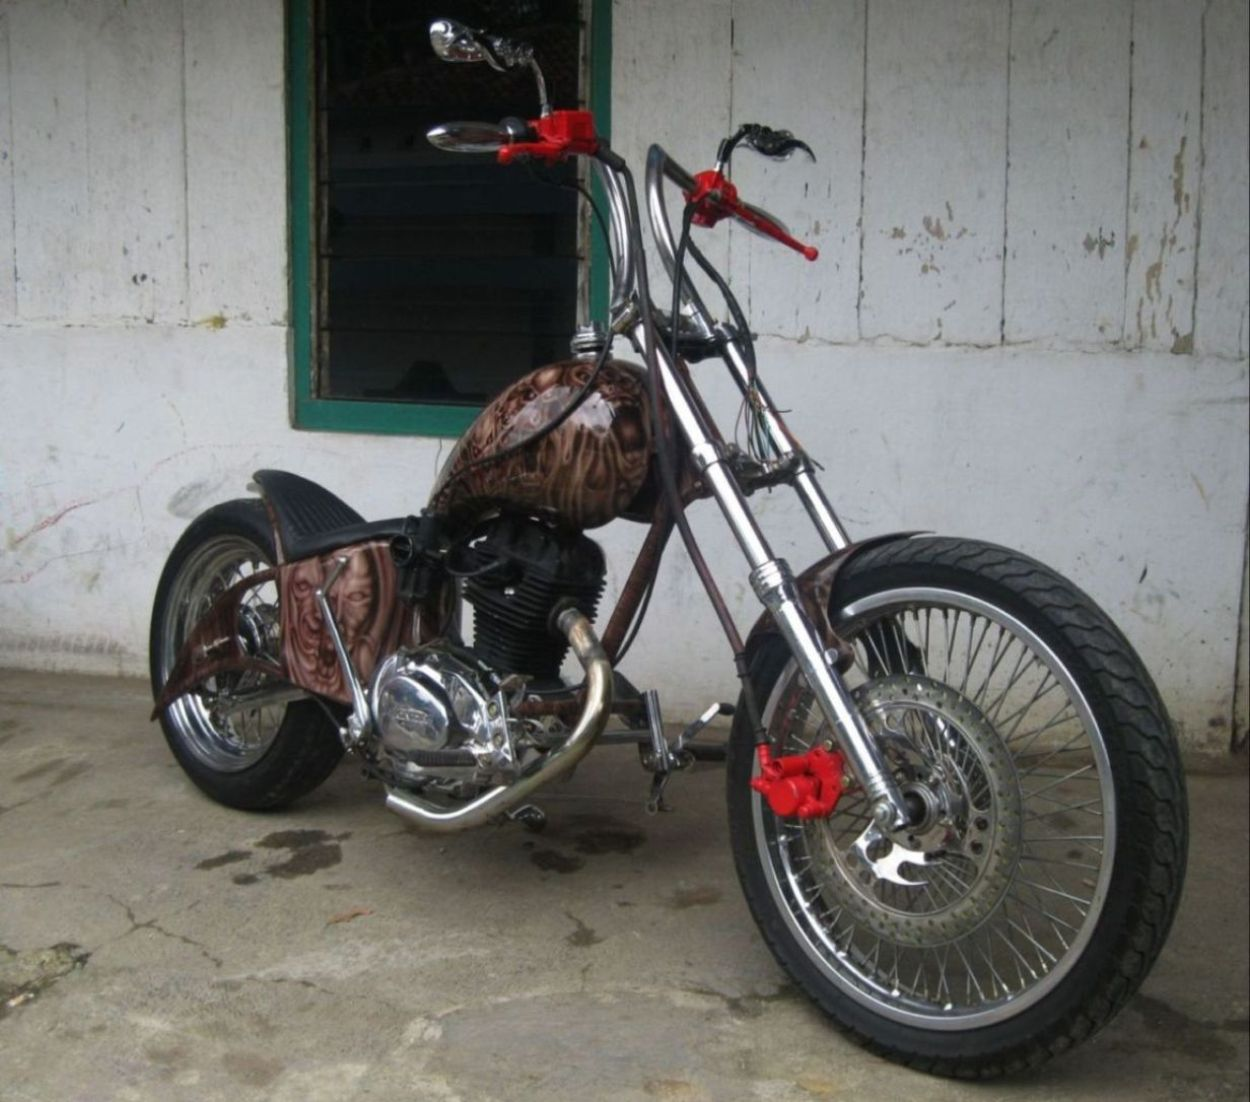 Download 82 Modifikasi Motor Cb Chopper Terlengkap Fire Modif